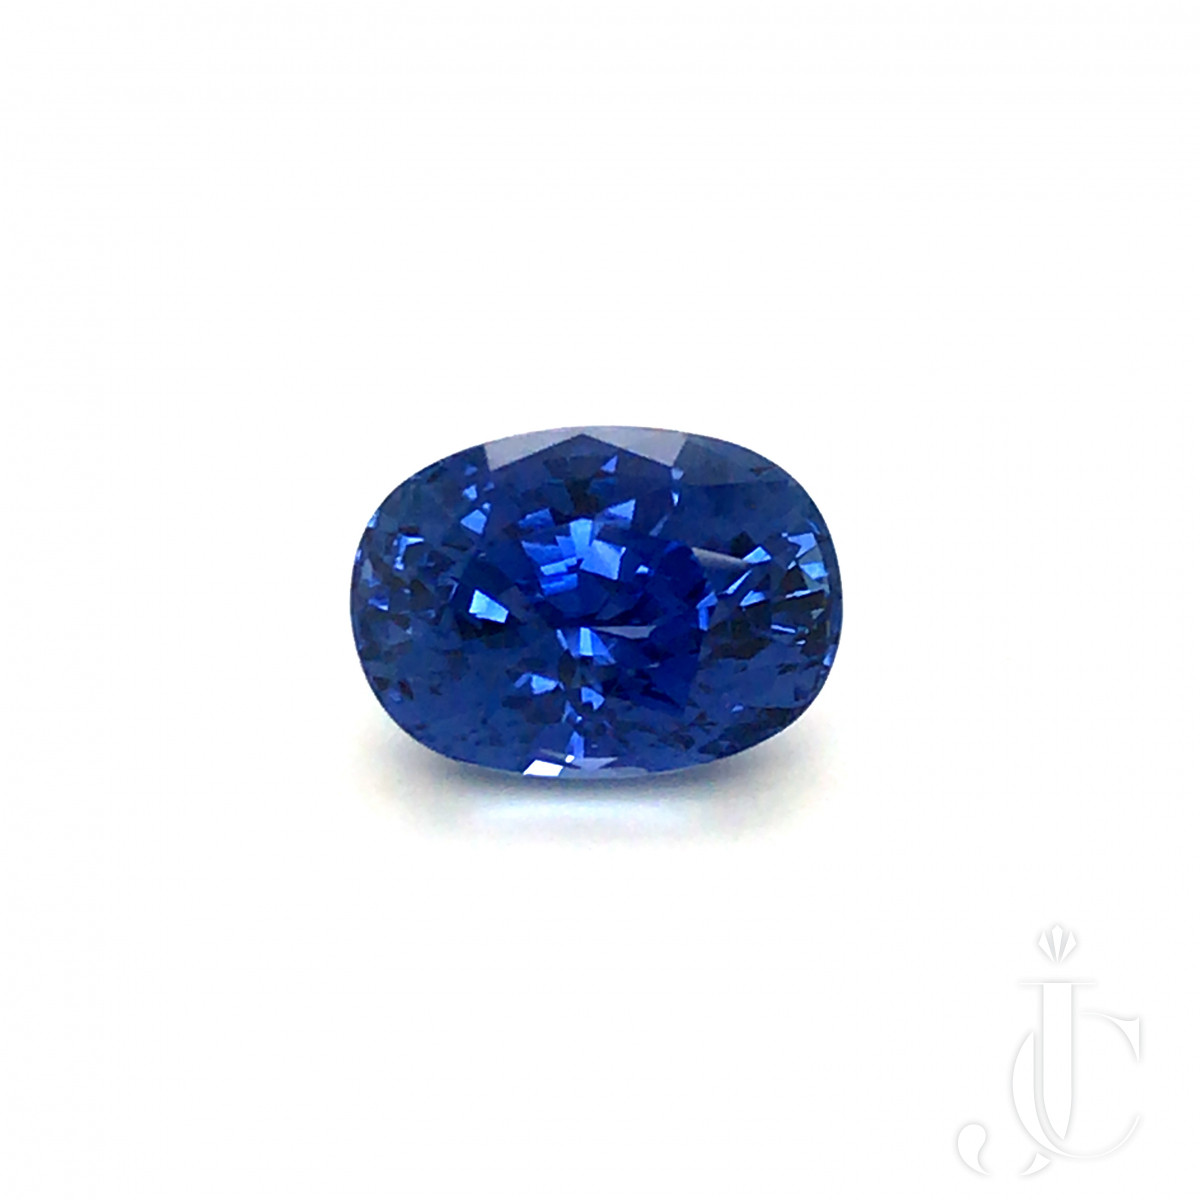 Natural oval Ceylon Sapphire 12.88ct blue with GRS lab report